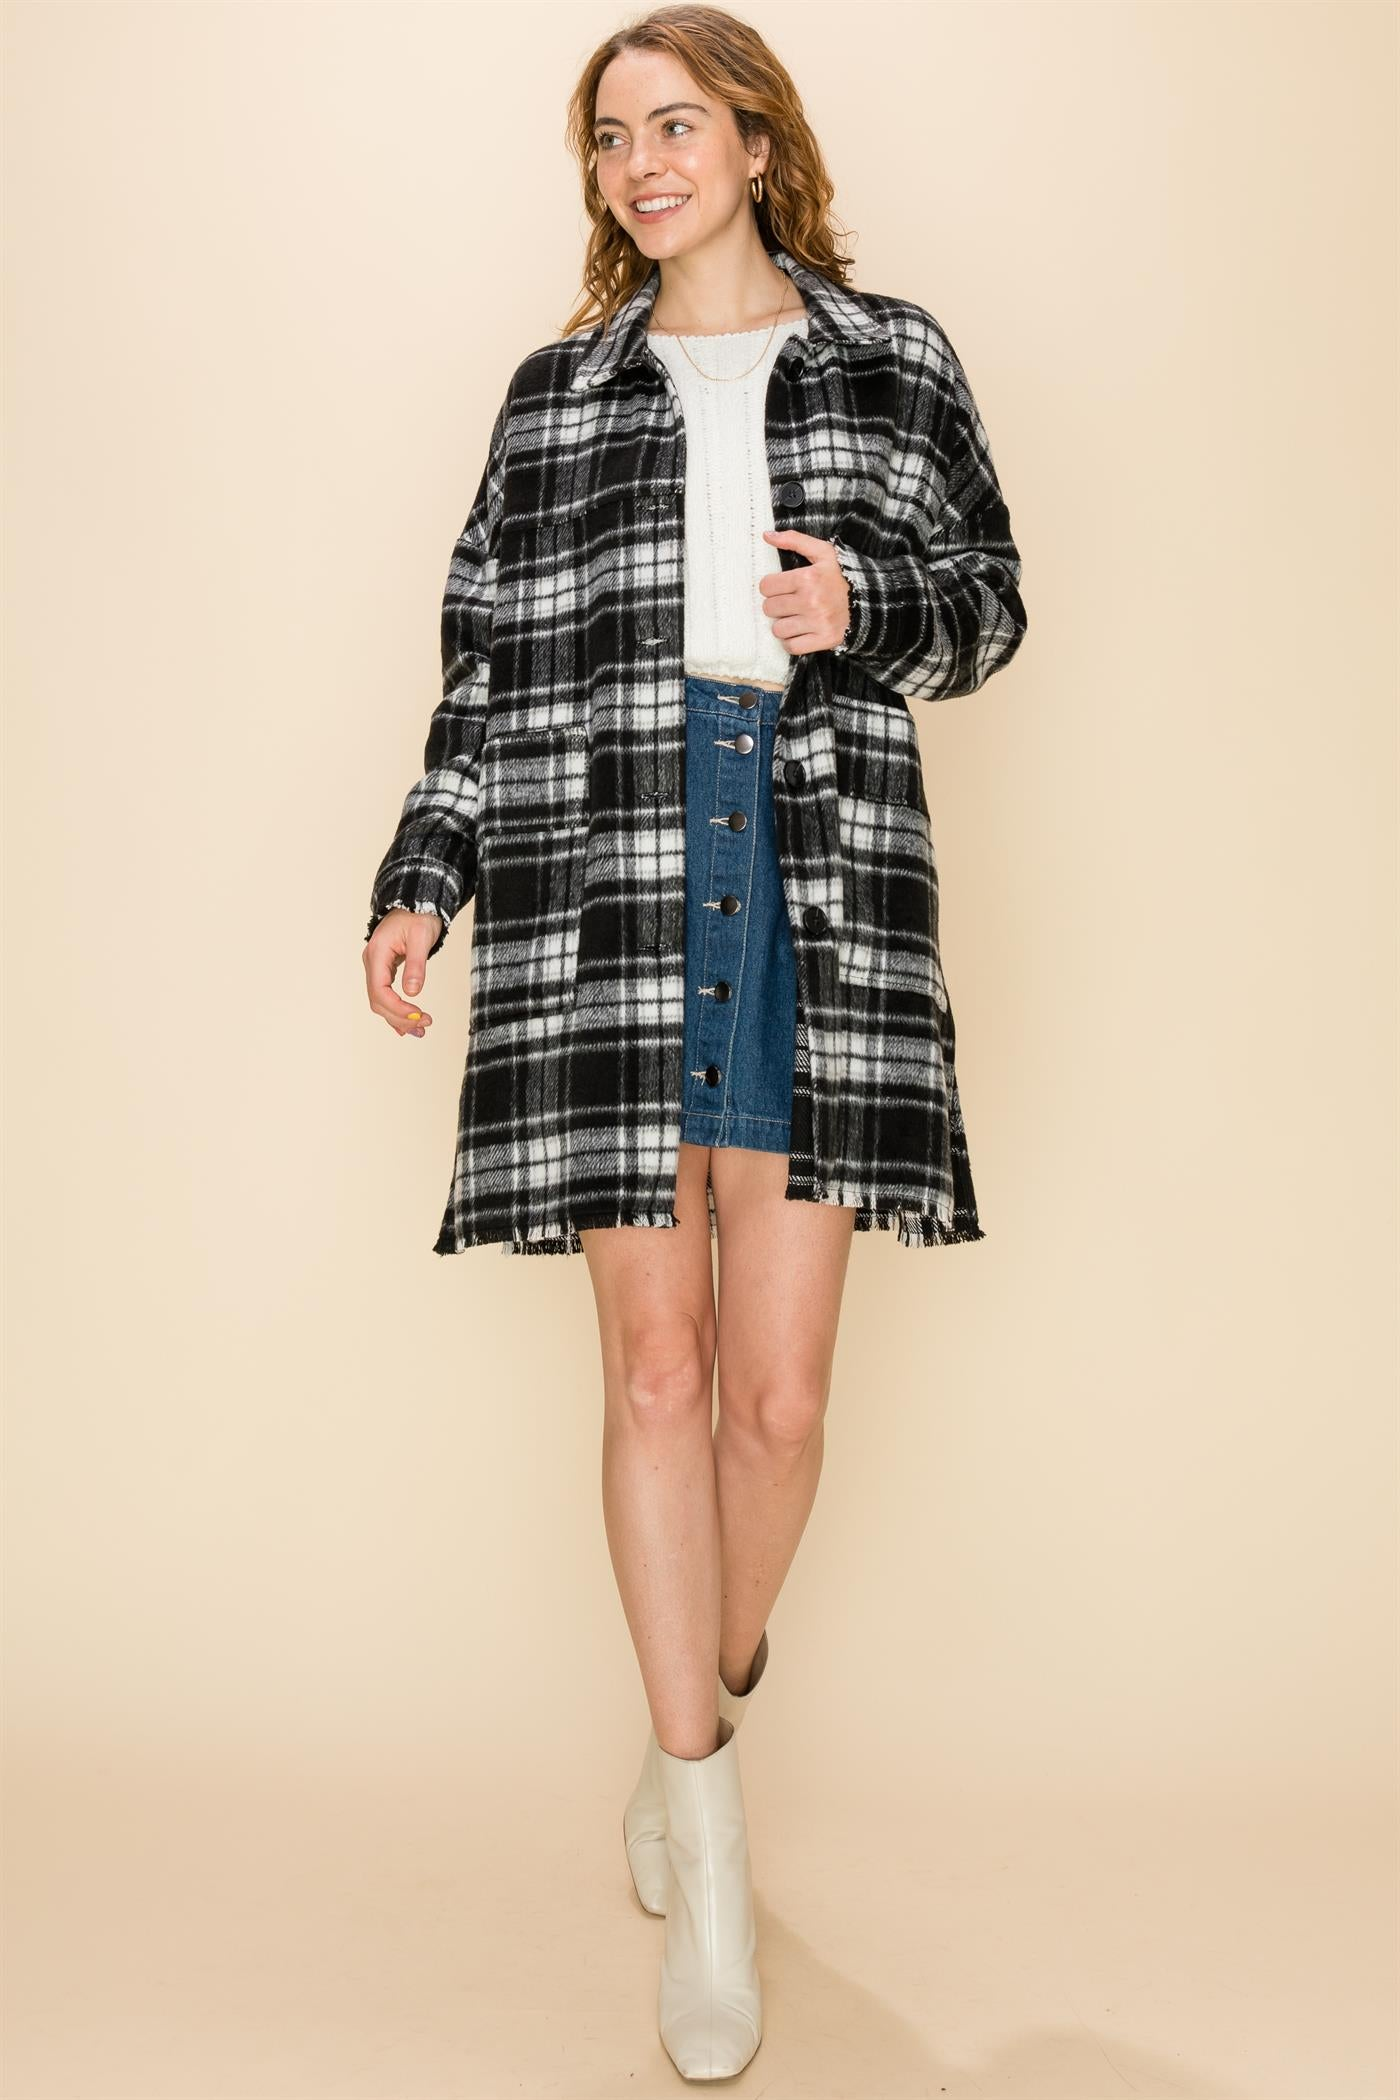 Long Black/White Plaid Jacket